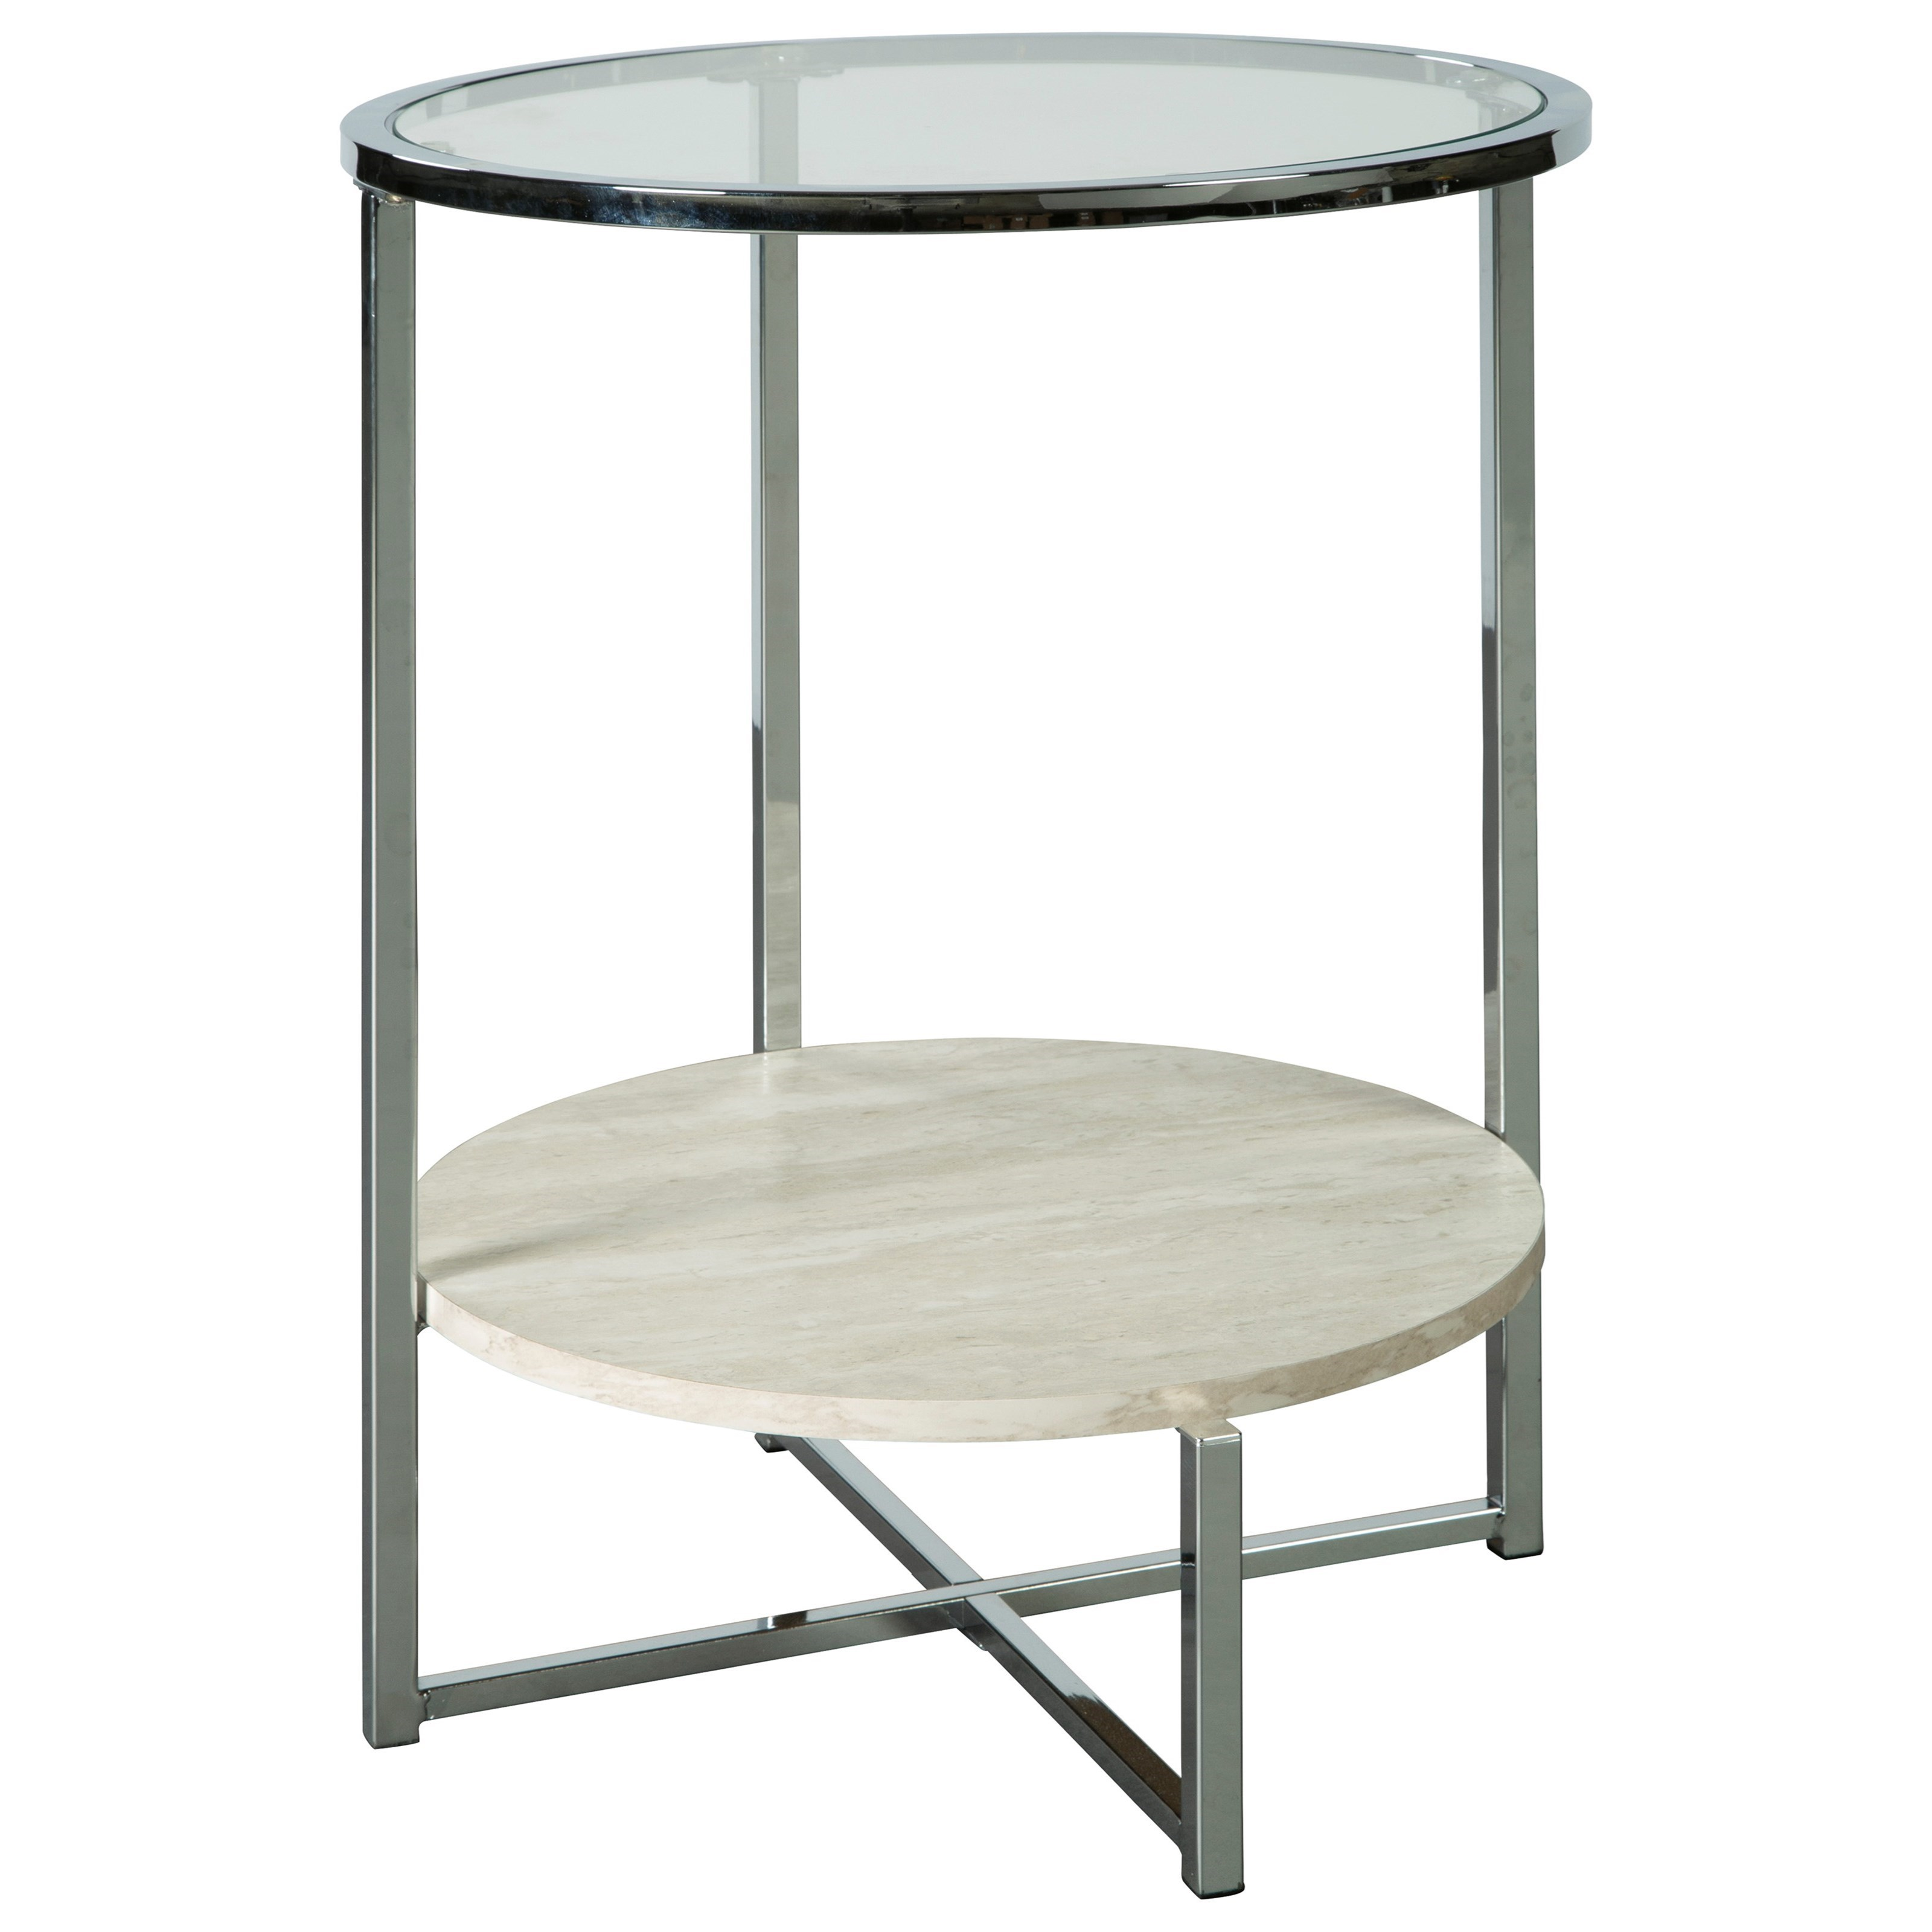 Bodalli Round End Table by Signature Design by Ashley at Zak's Warehouse Clearance Center